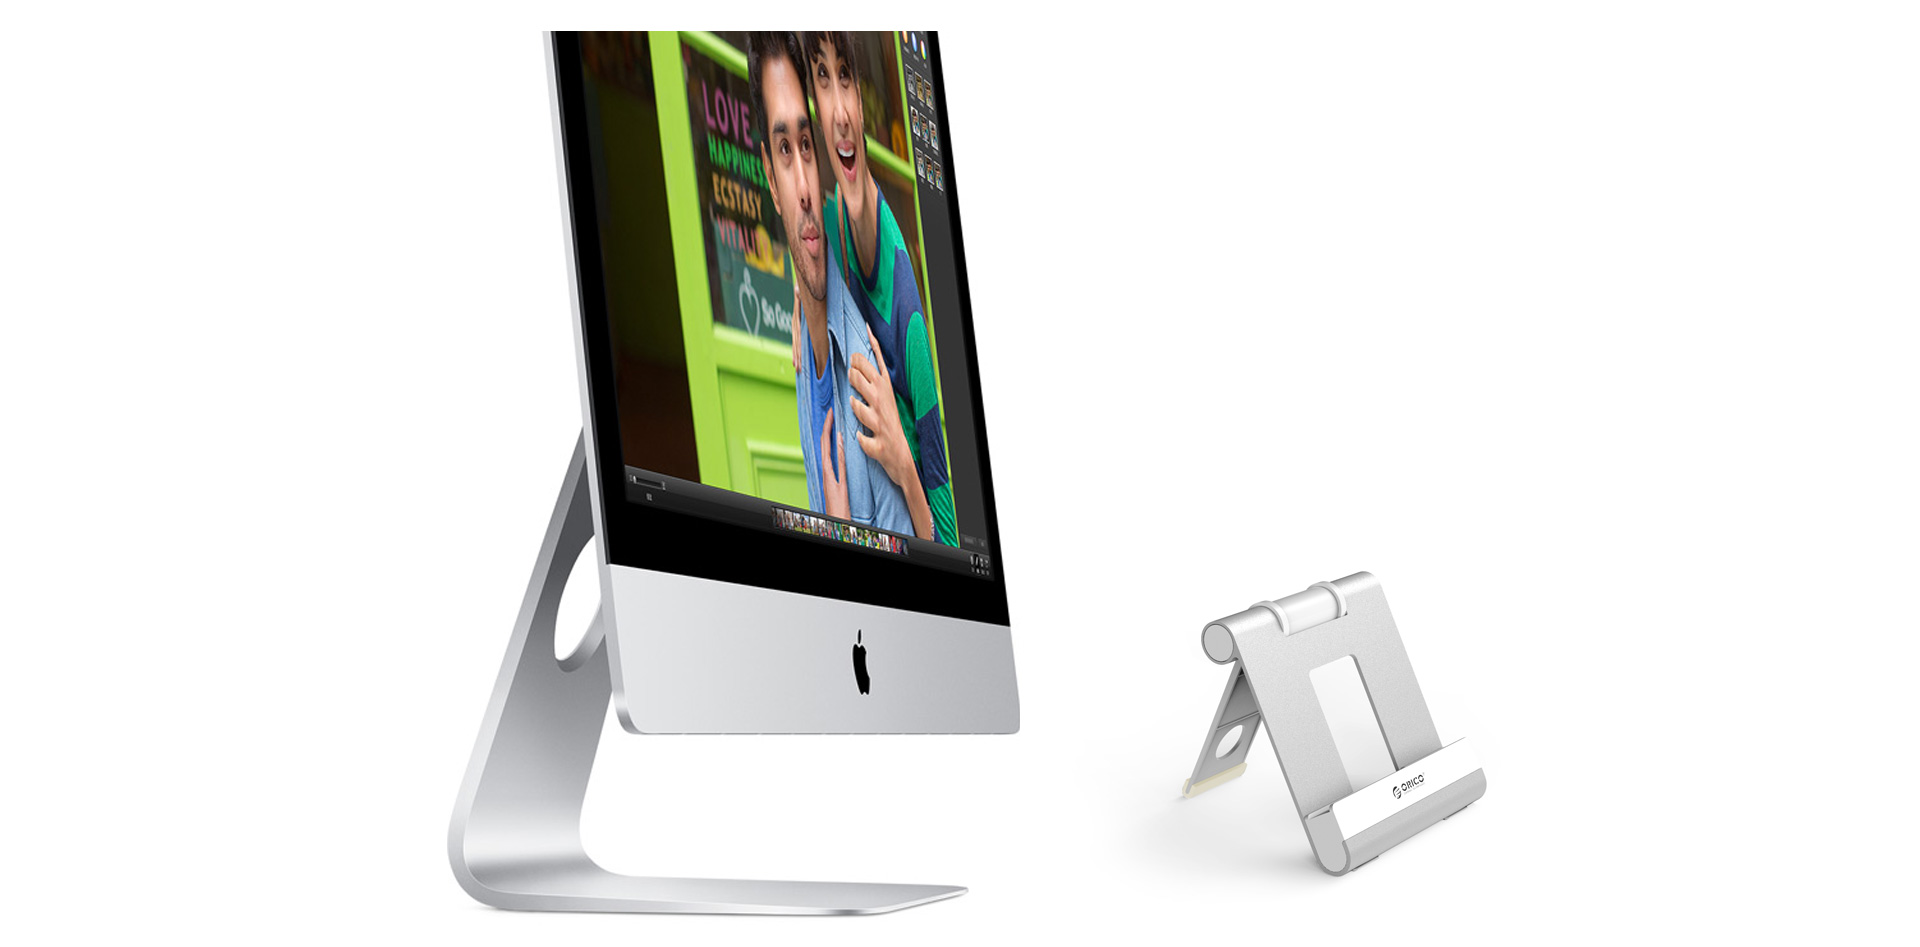 the foldable holder is made of aluminum